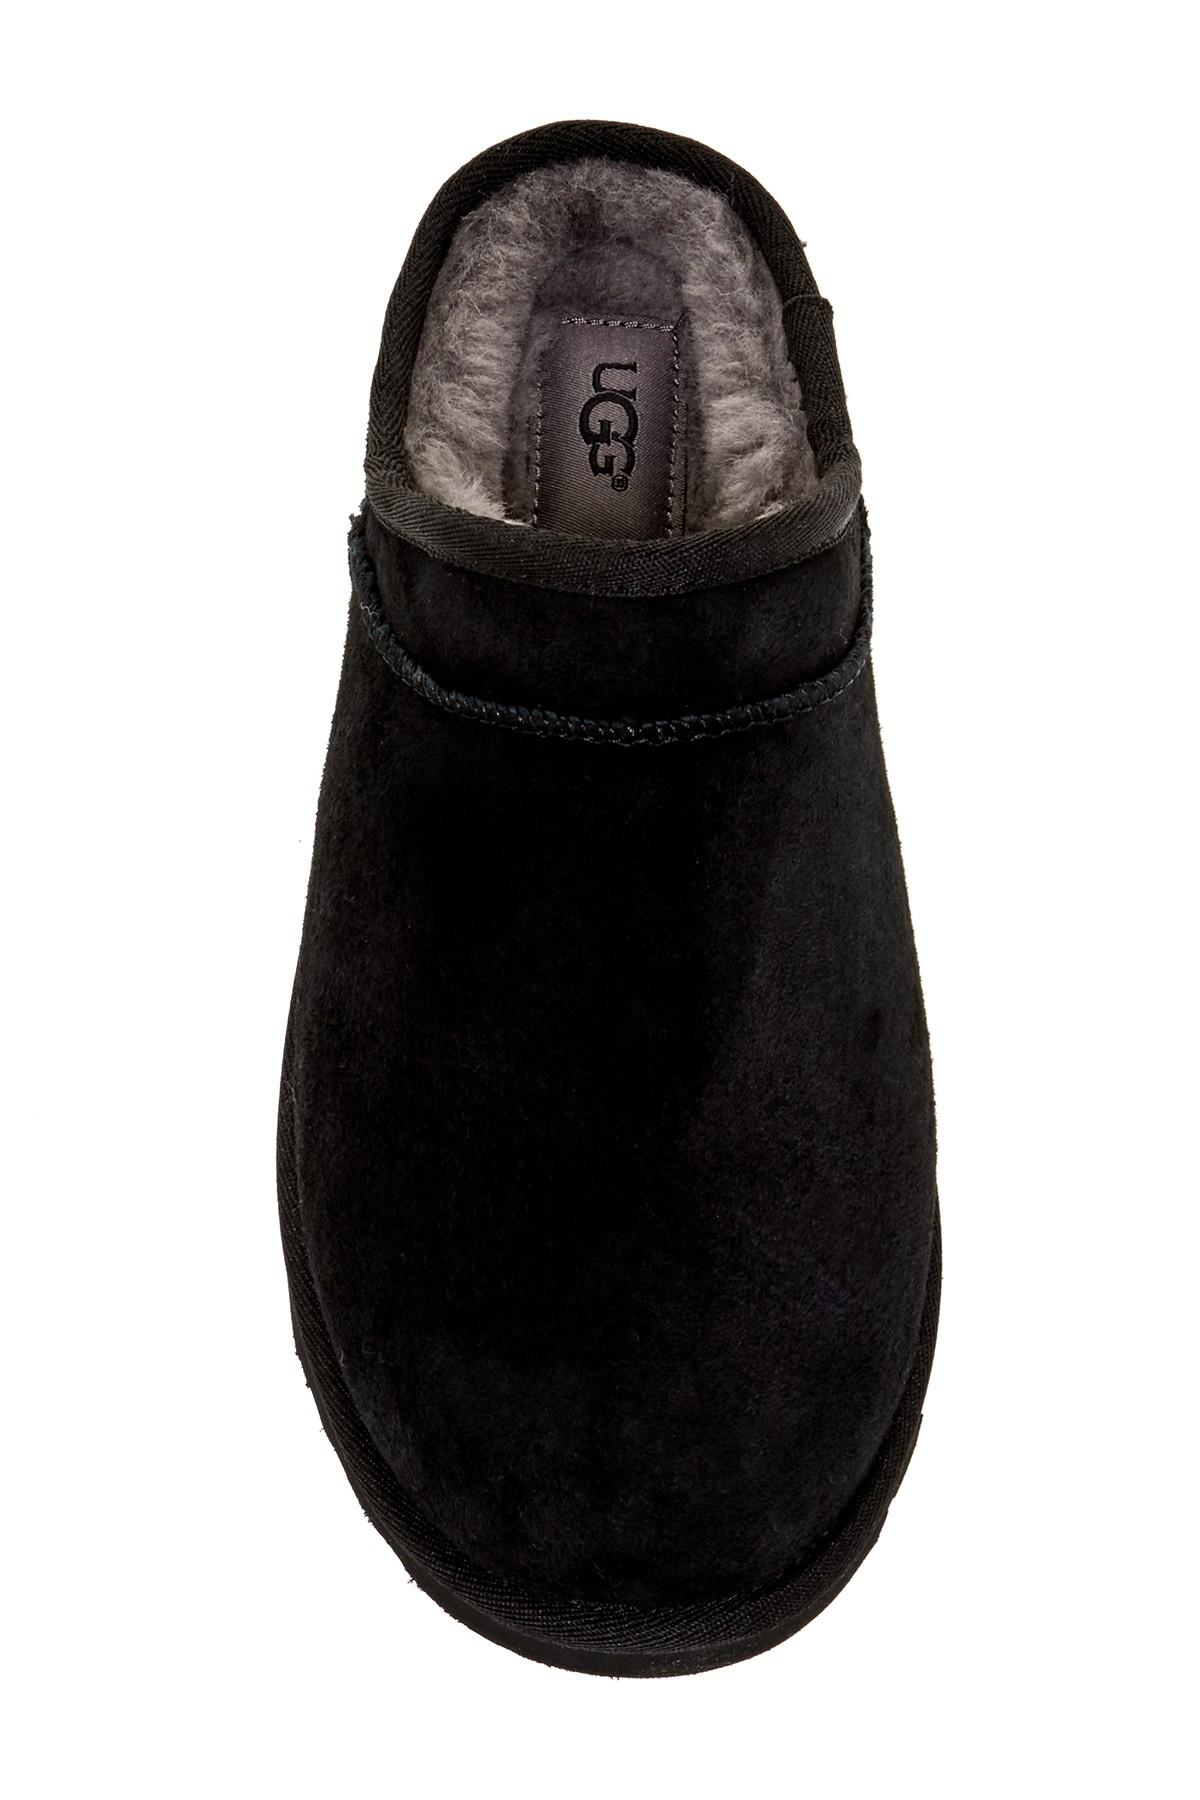 dd3257e365ed7 Ugg - Black (r) Classic Water Resistant Slipper (women) - Lyst. View  fullscreen